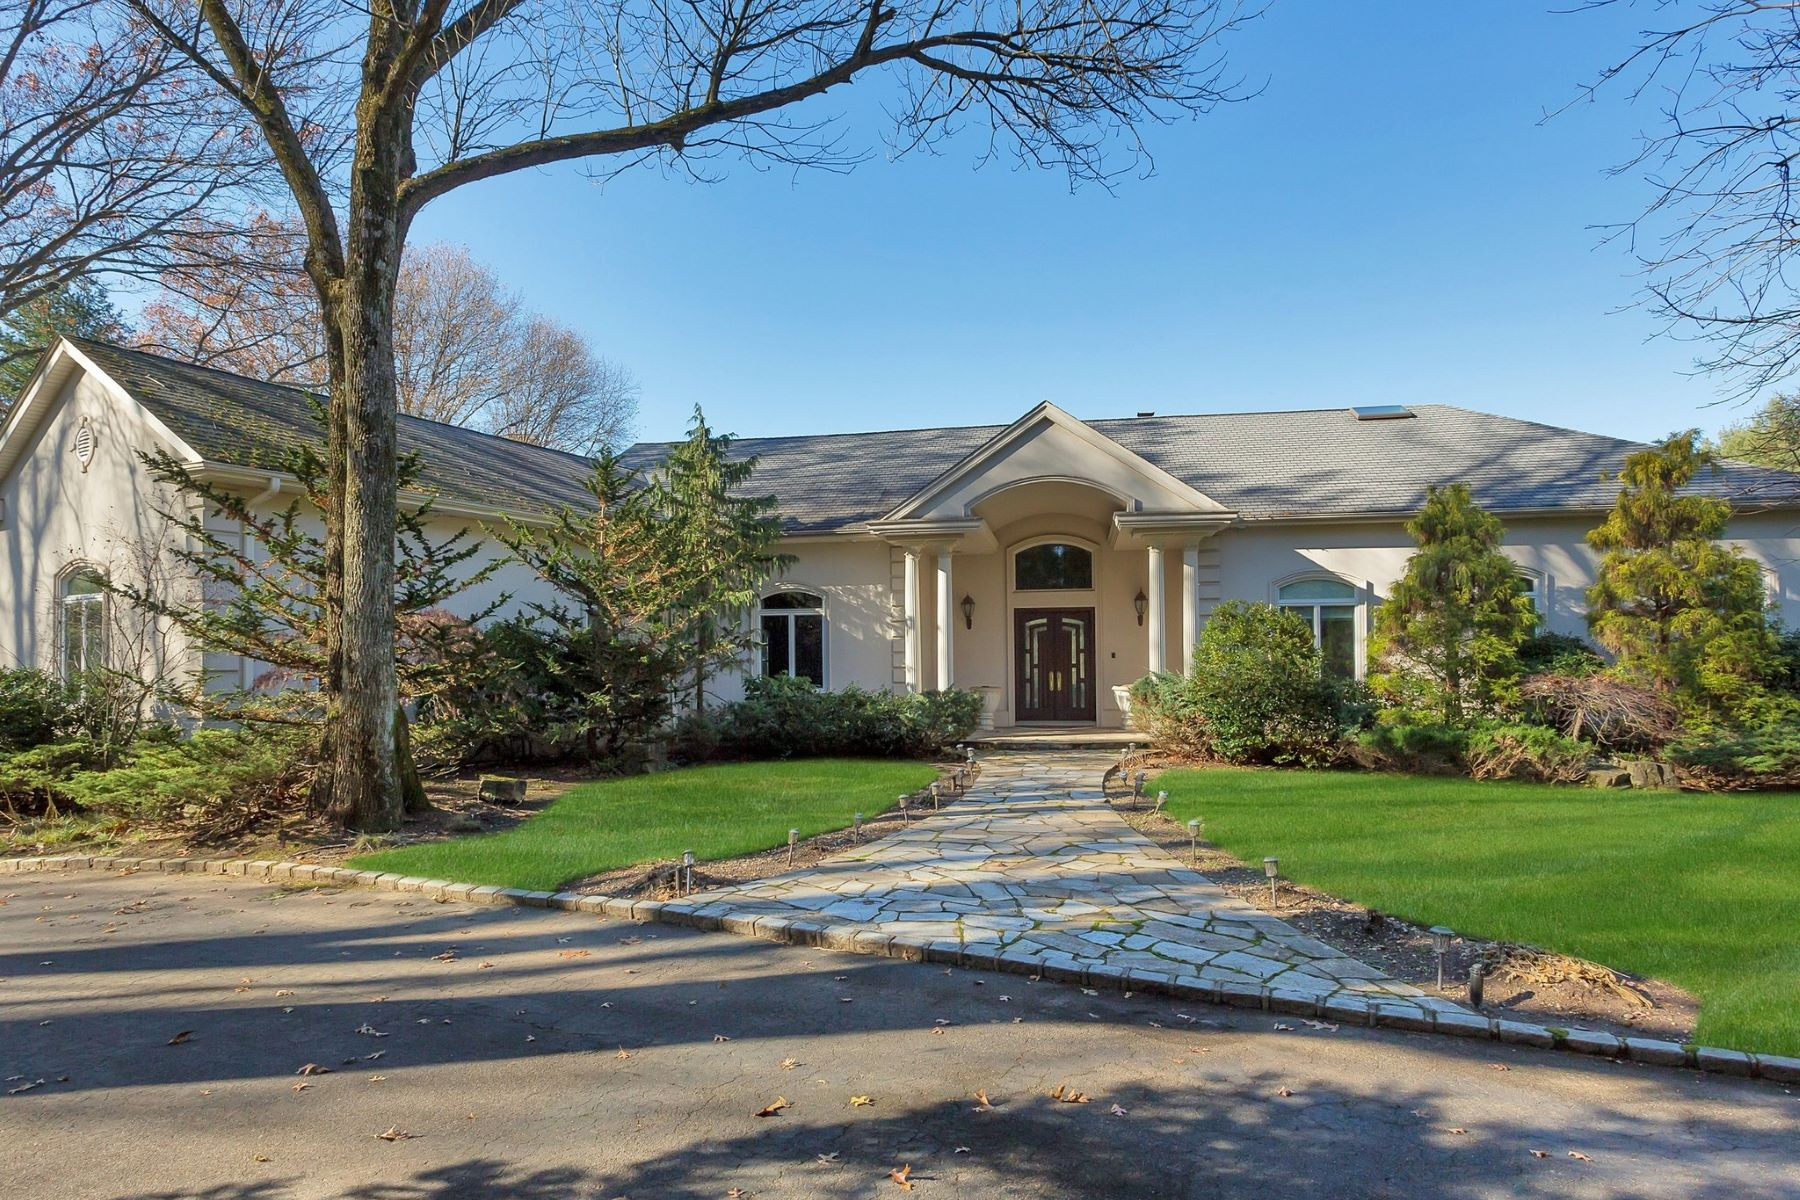 Single Family Homes for Sale at Old Westbury 16 Pheasant Run Old Westbury, New York 11568 United States